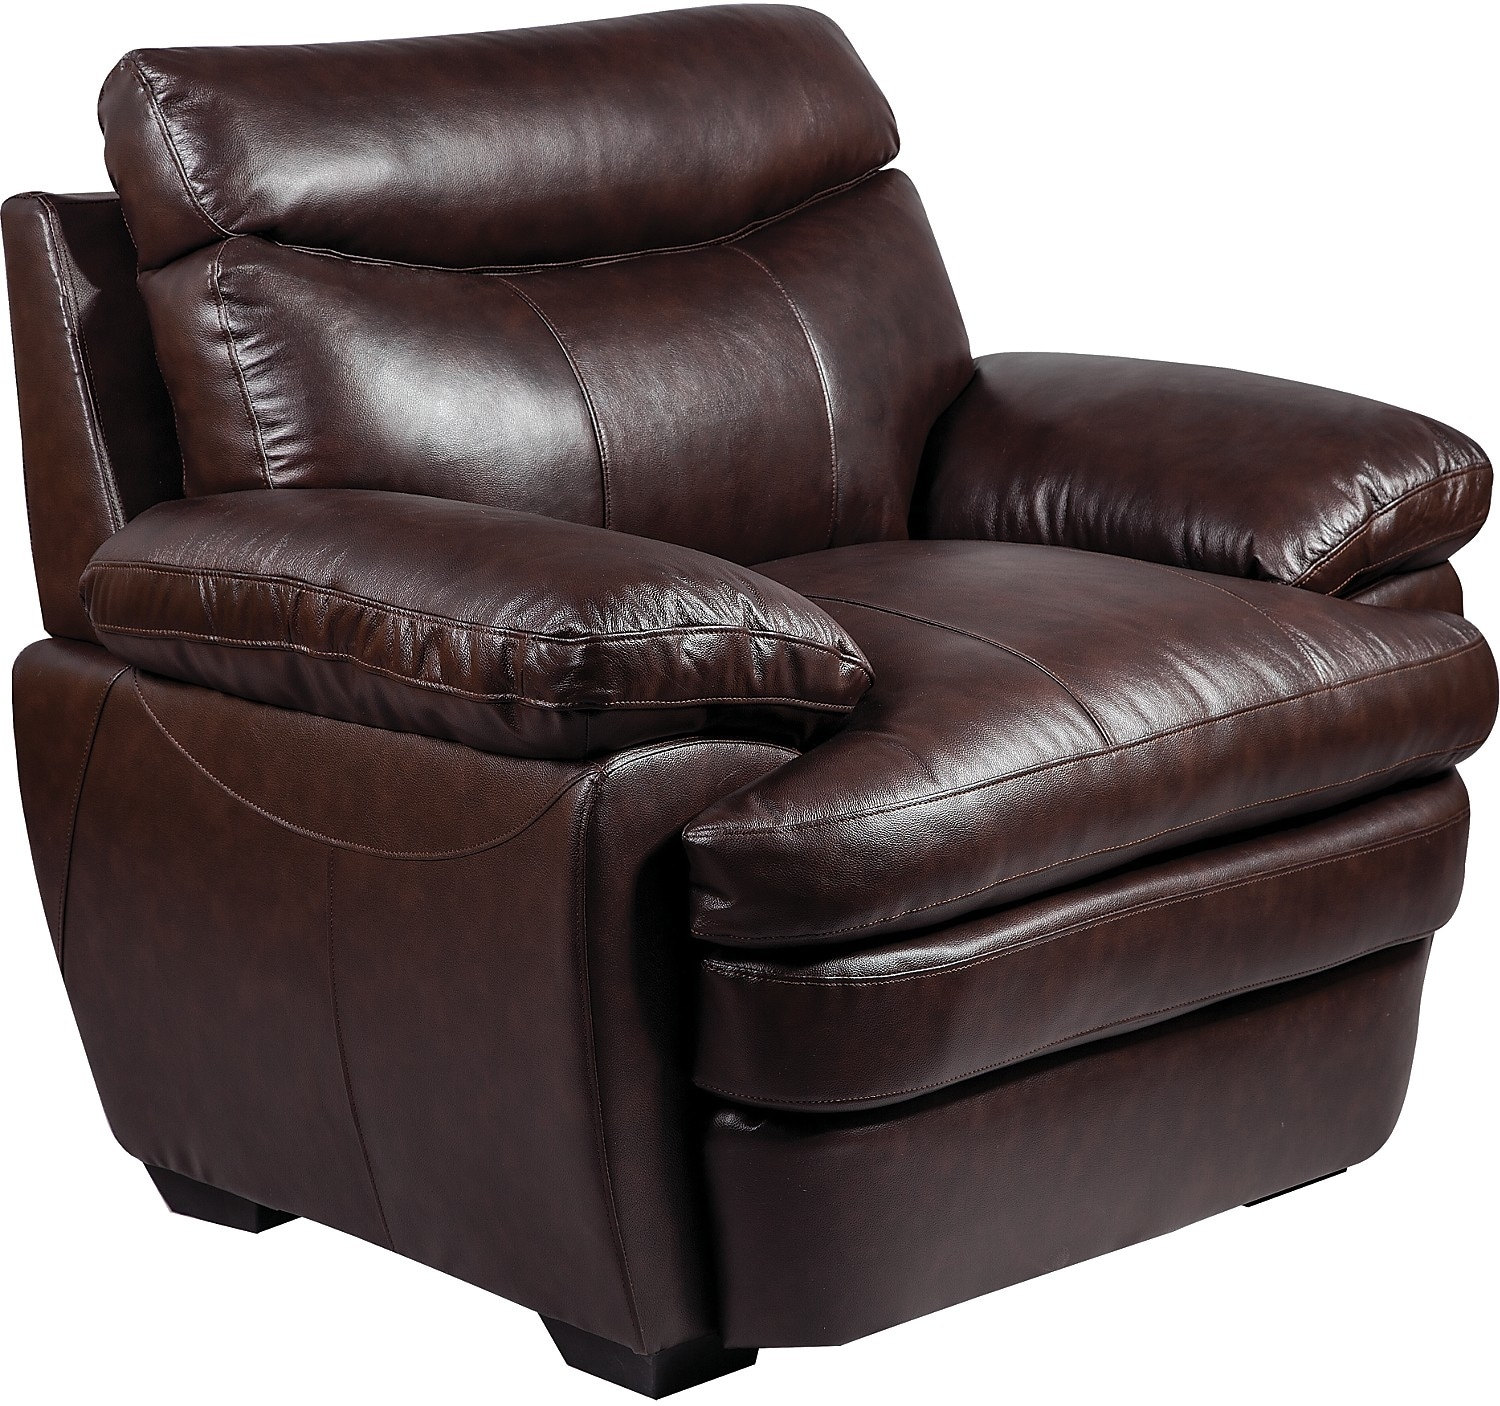 Composite Leather Sofa: Marty Genuine Leather Sofa - Brown